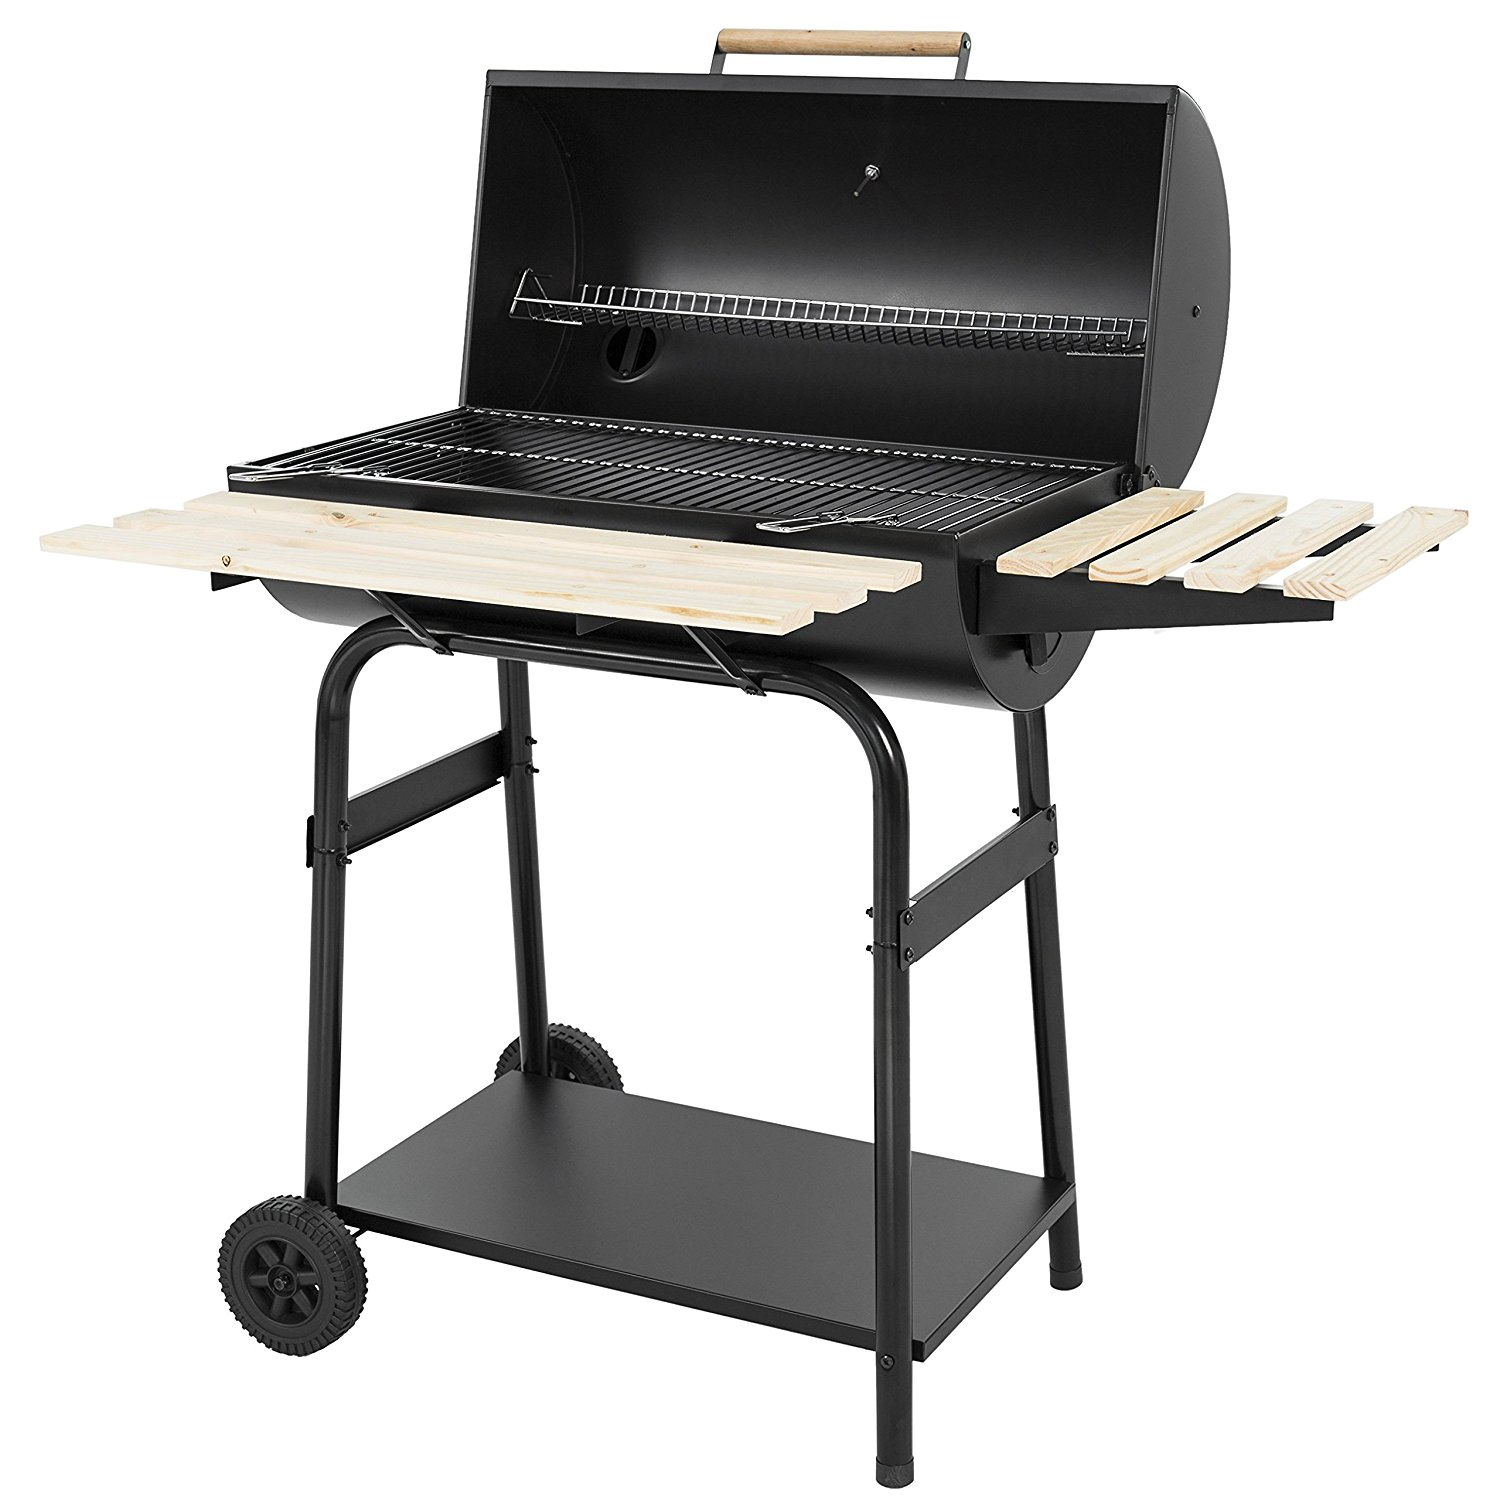 Great Bbq Pit Set Up For The Backyard Perfect Under The: Top 13 Best Charcoal Grill Under $100